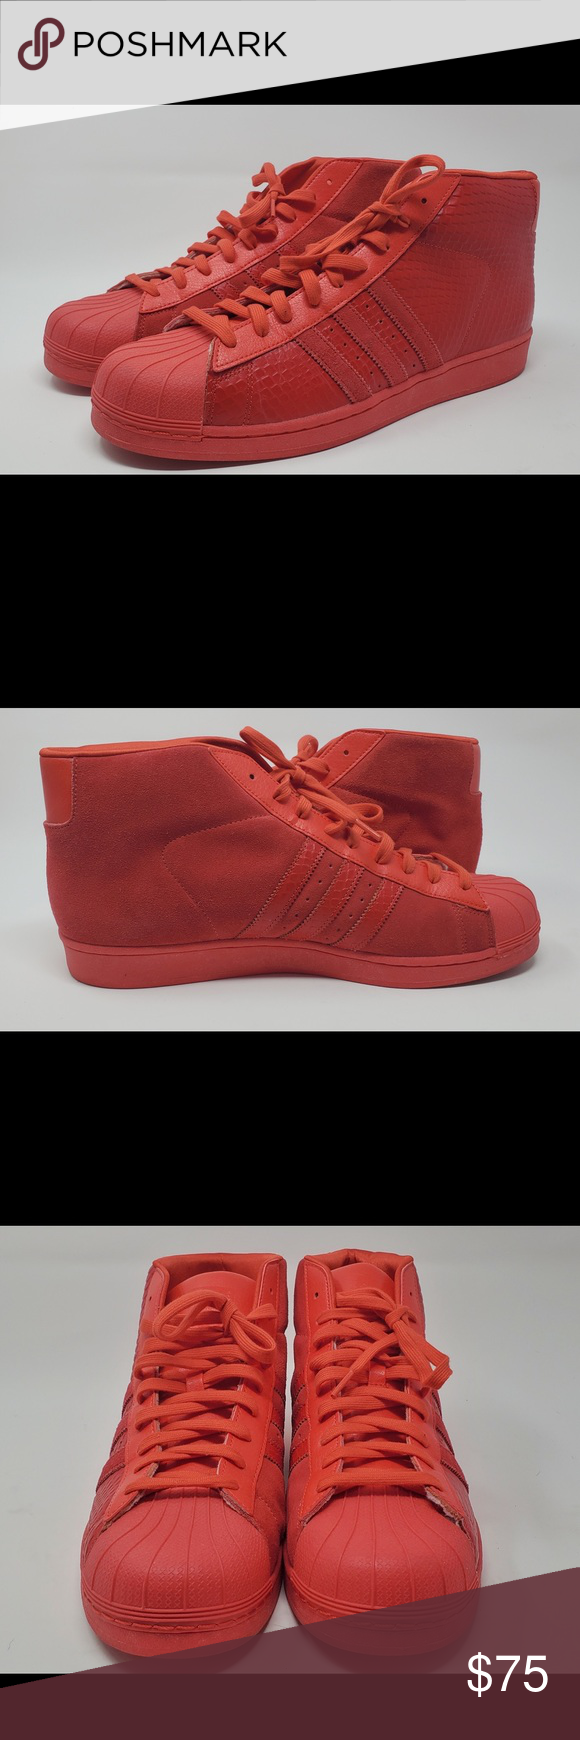 Shell toe,red adidas high tops | Red